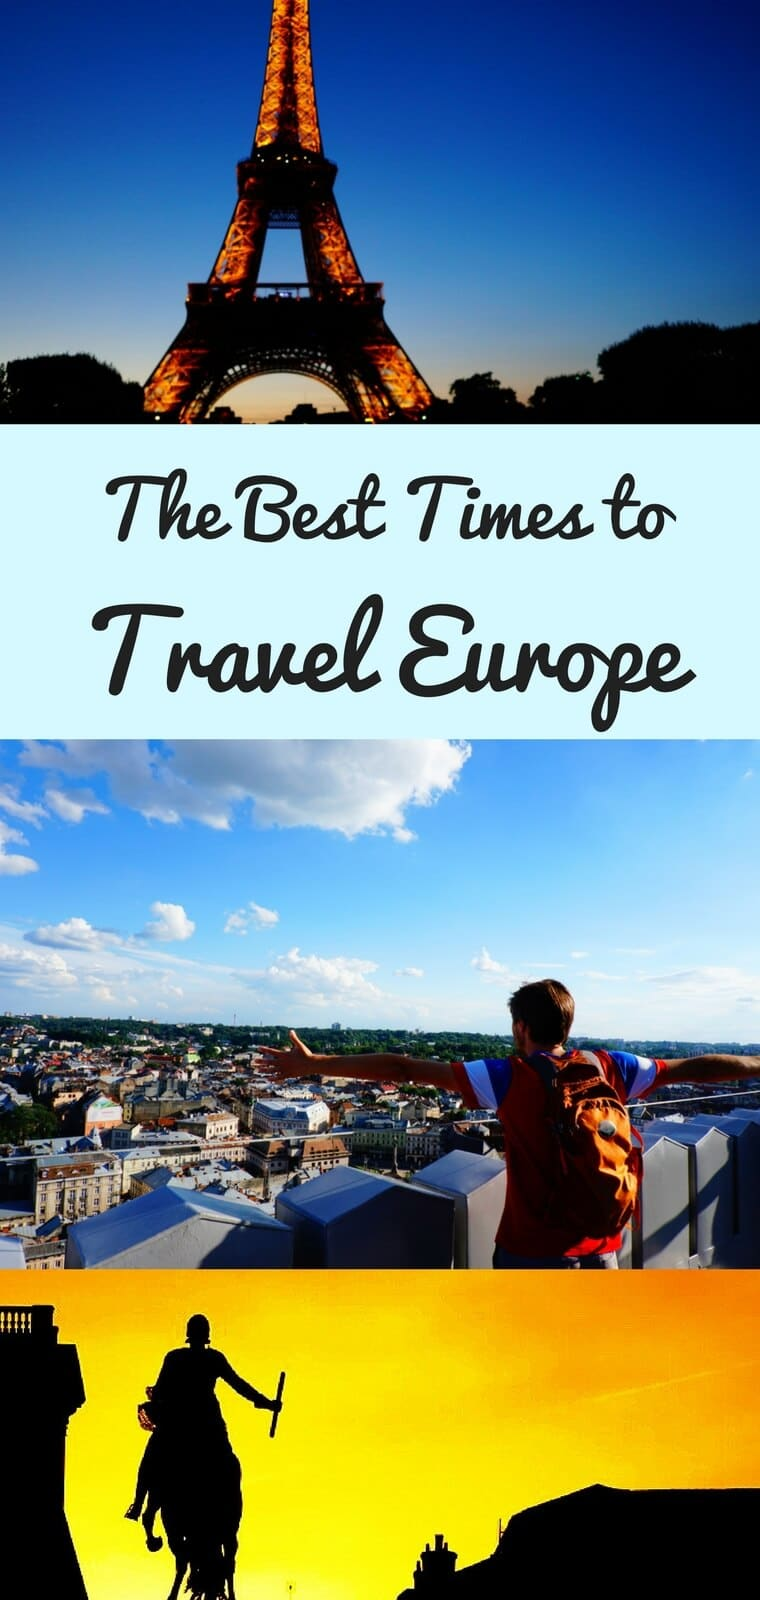 Looking to figure out when to travel Europe? These questions will help you determine your best time to travel to Europe, plus I'll give you links to resources to help you plan your perfect Europe trip at the right time of year. #Europe #EuroTrip